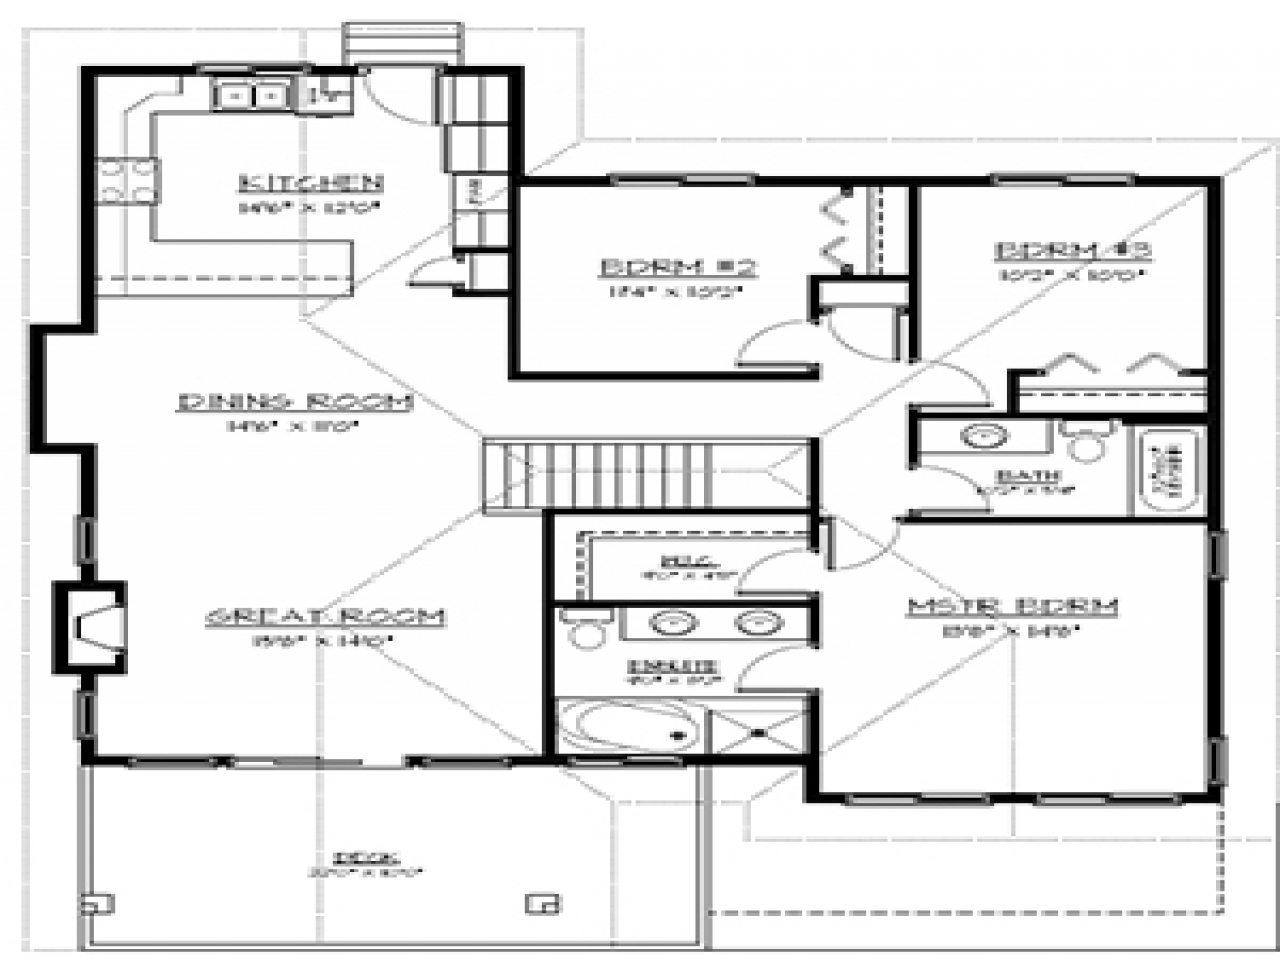 Finished basement floor plans finished basement gallery for Basement finishing floor plans